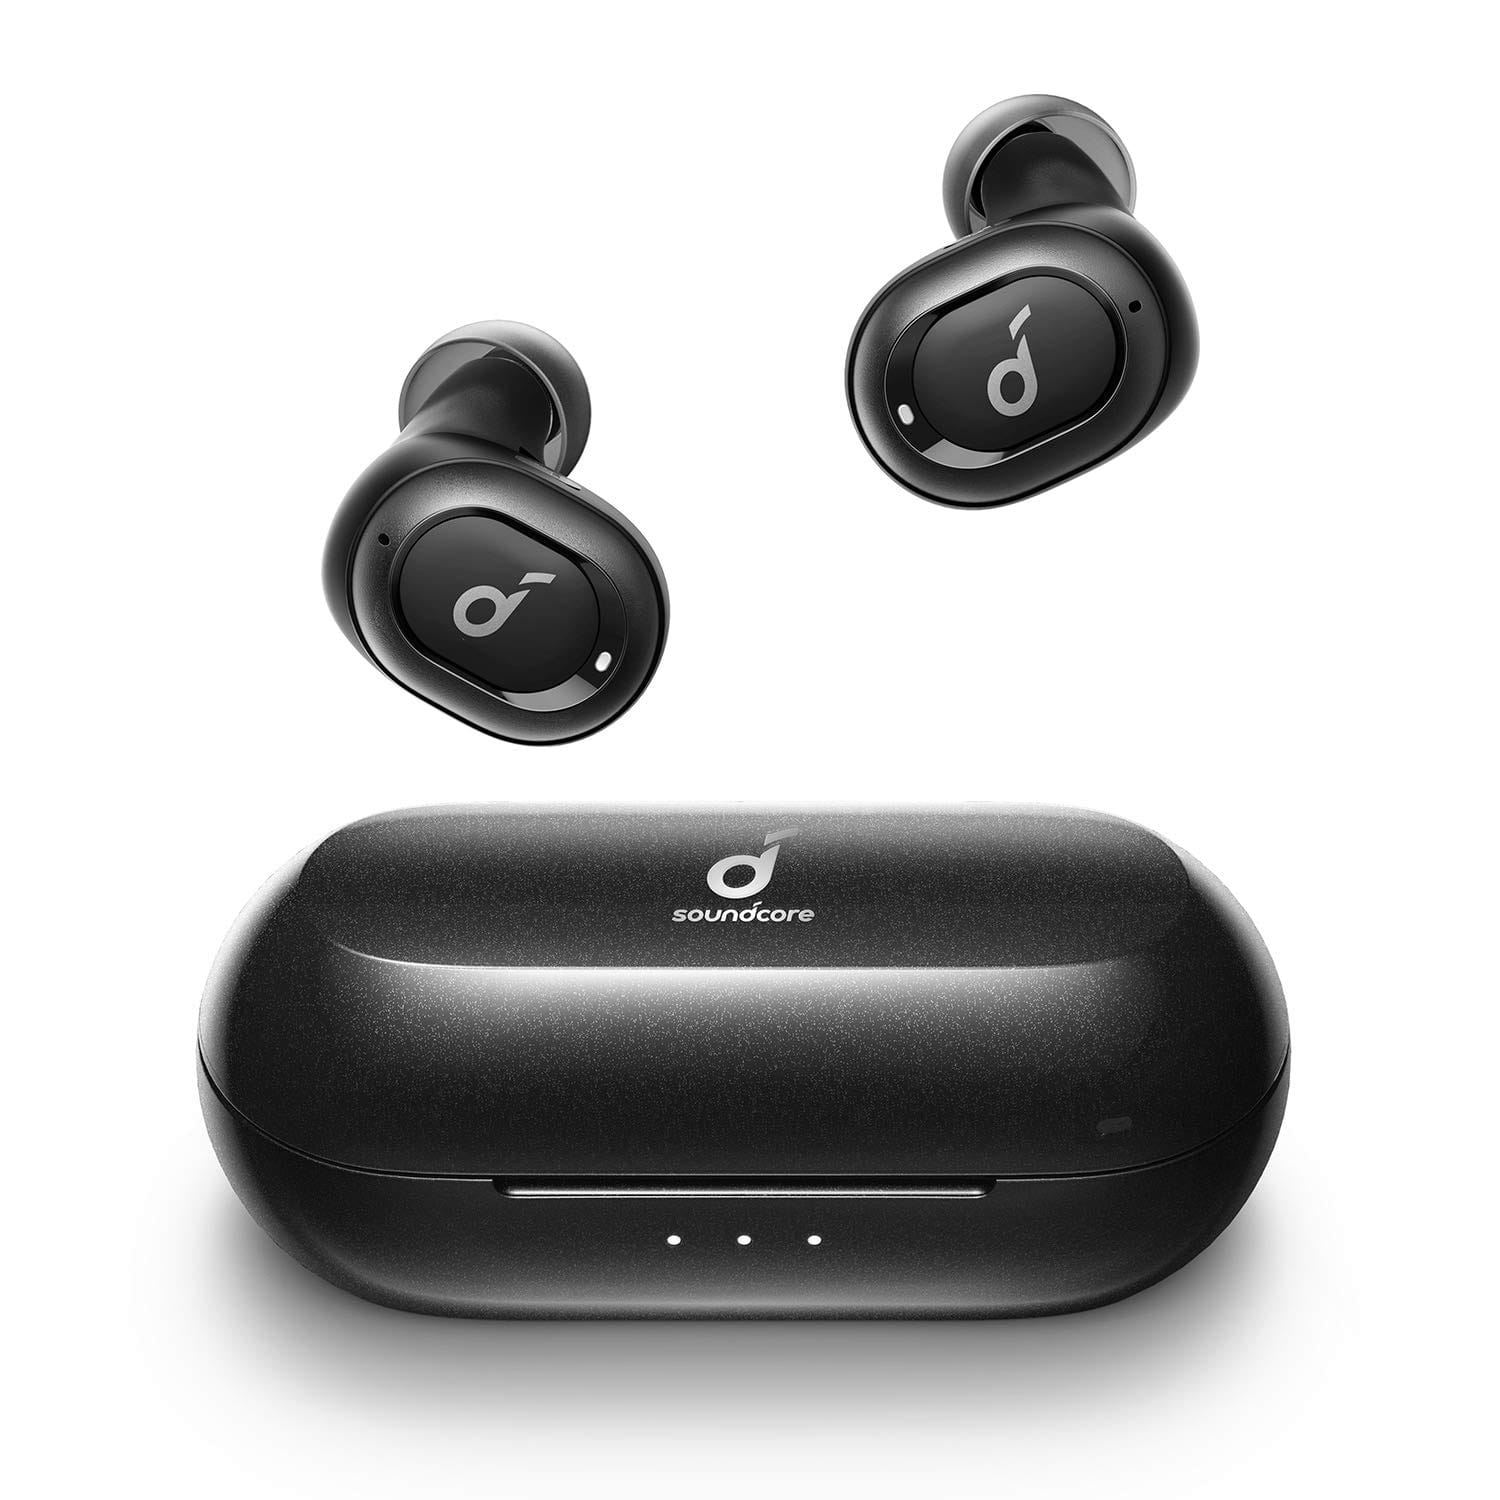 Anker Soundcore Liberty Neo Bluetooth 5.0 Wireless Earbuds $30 + Free Shipping